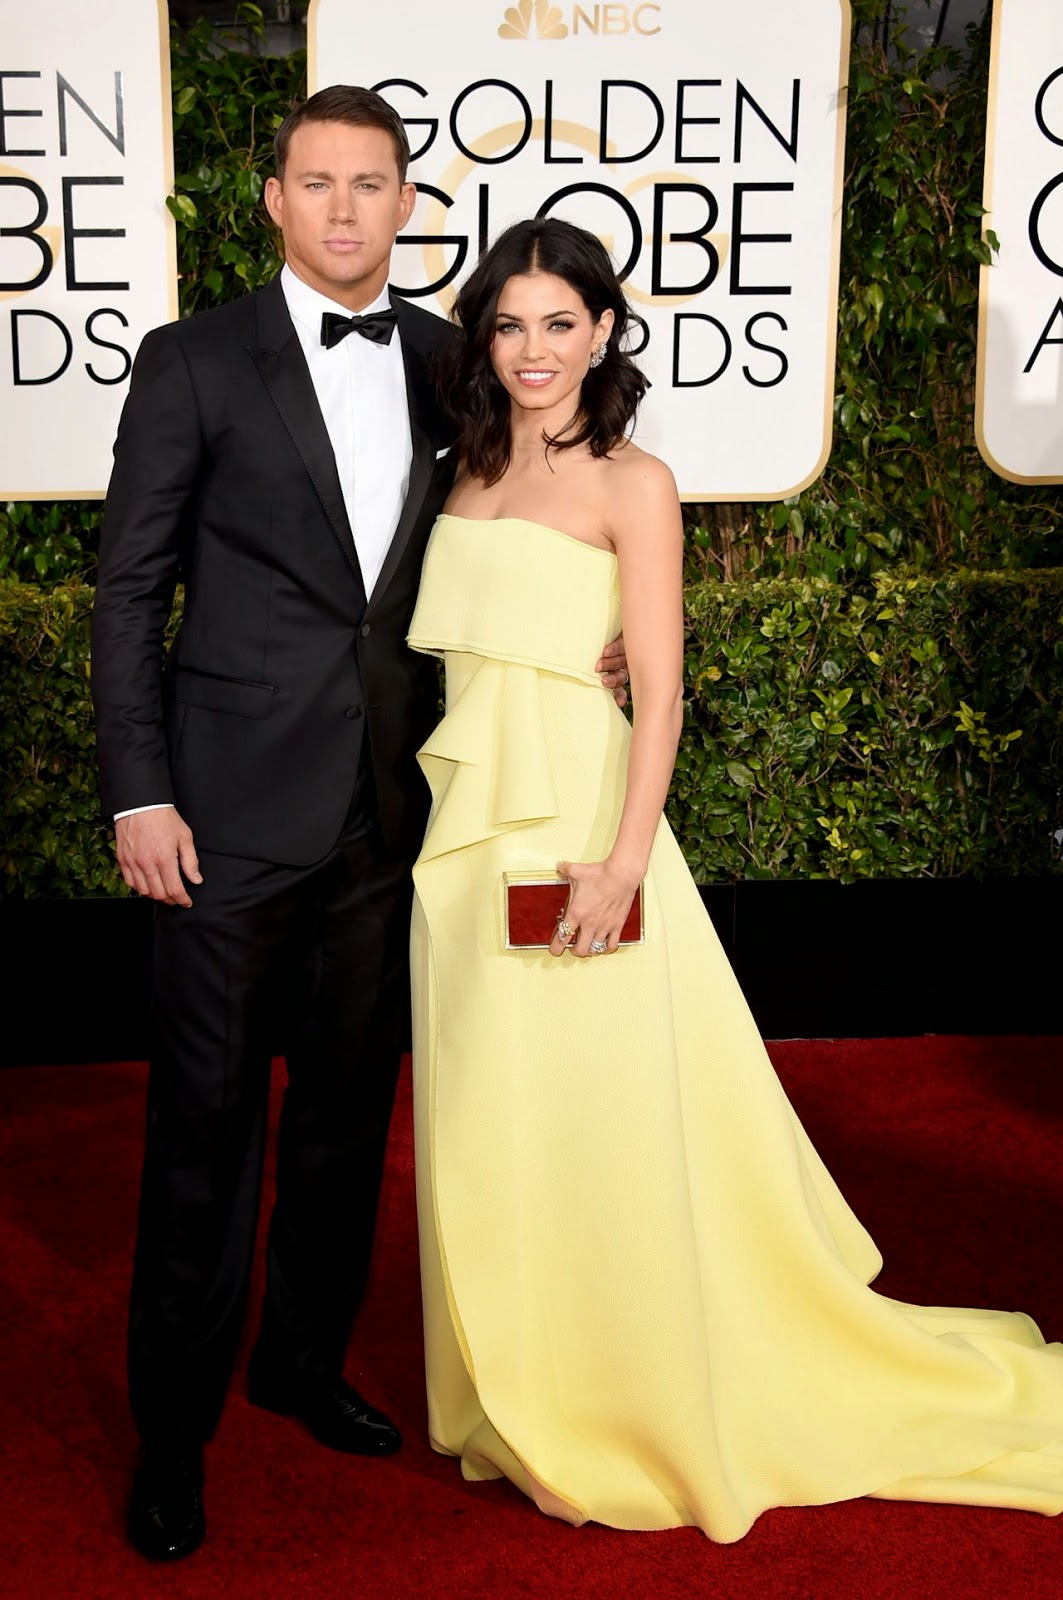 Jenna Dewan-Tatum stuns in a lemon Carolina Herrera dress at the 2015 Golden Globes